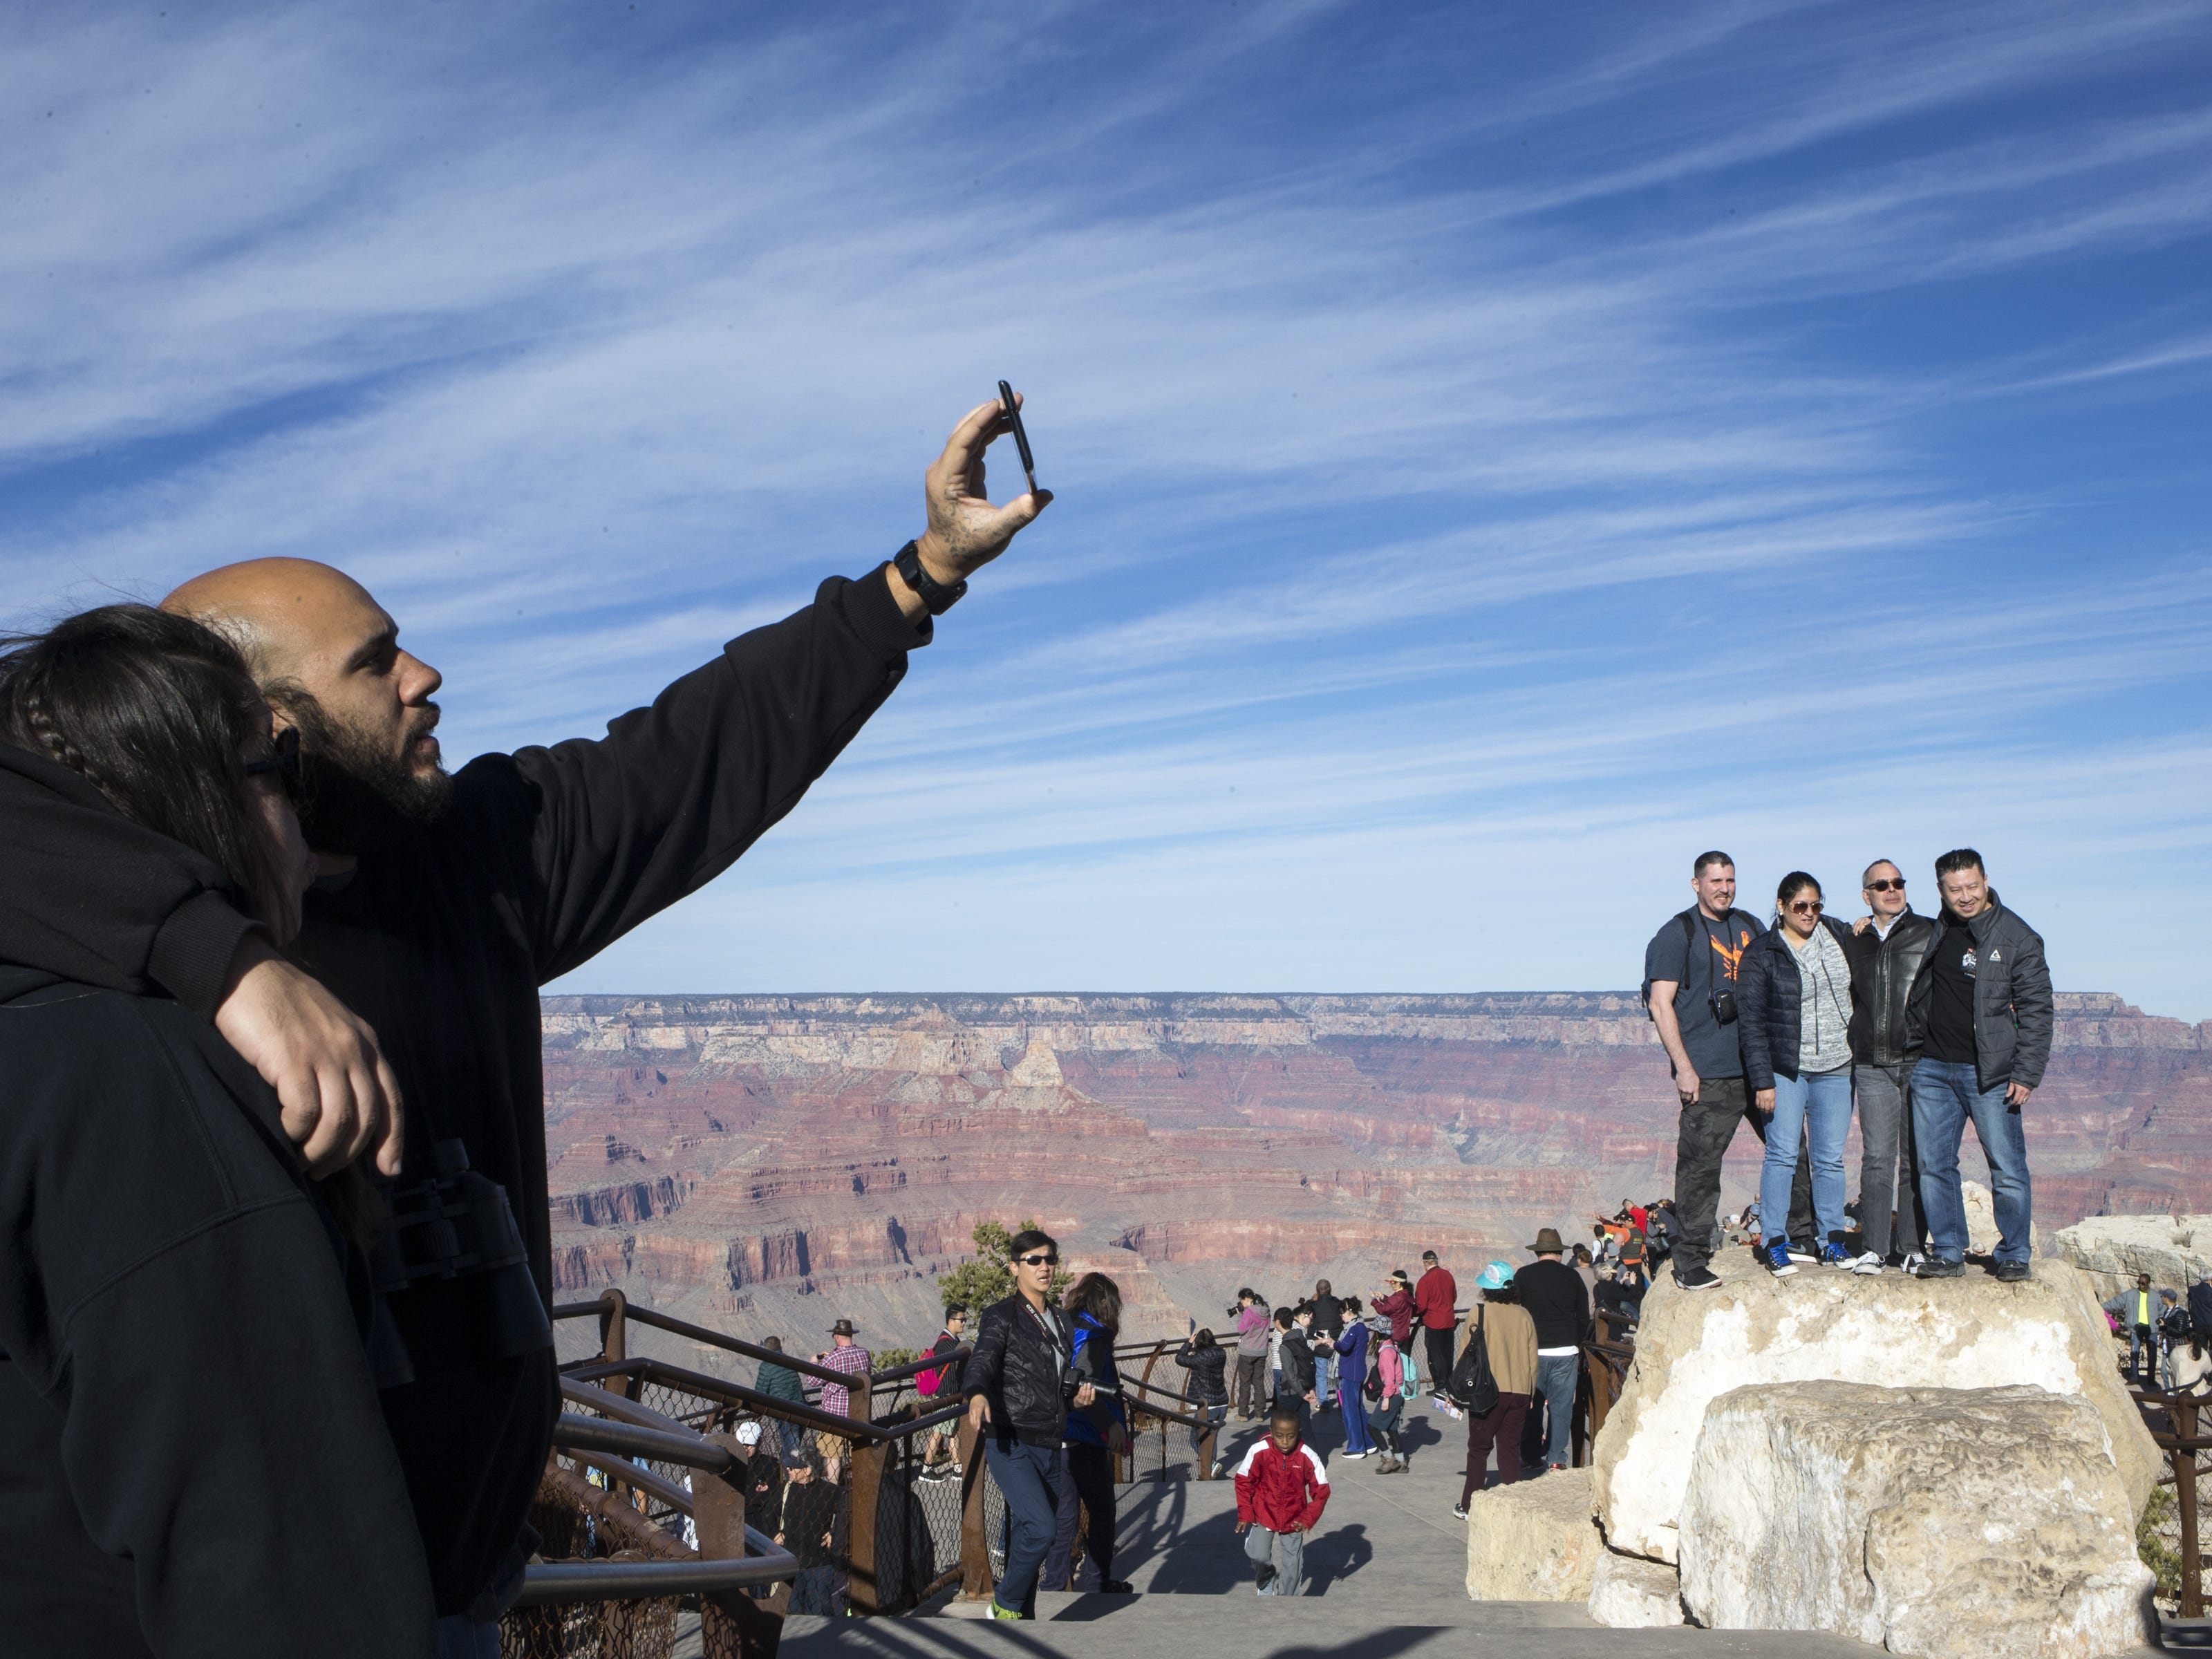 Visitors take photos from Mather Point, at Grand Canyon National Park. Railings mark the edges of the rum, but don't prevent people from moving farther.